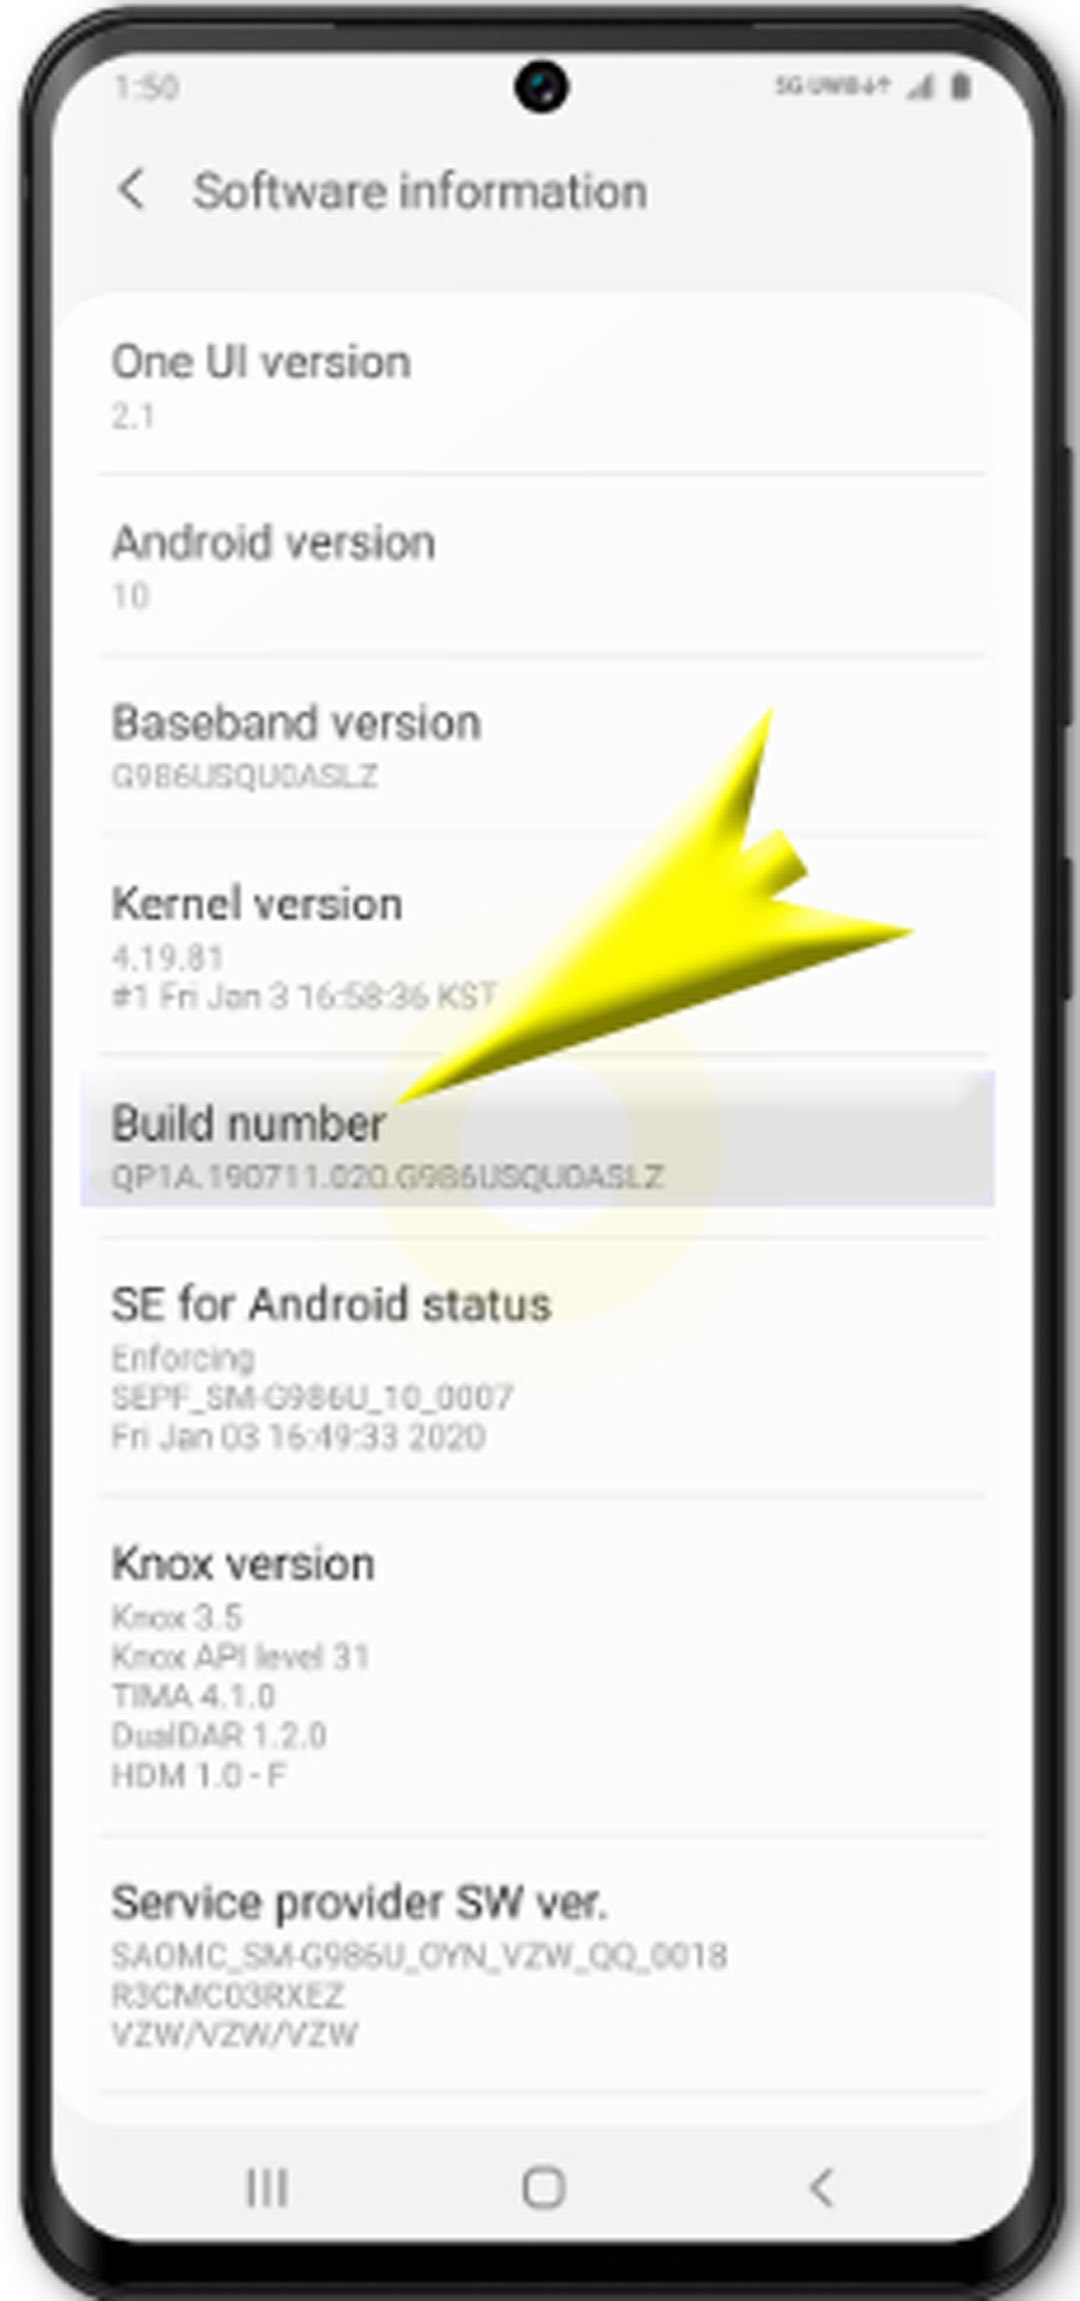 enable usb debugging on galaxy s20 - Build number